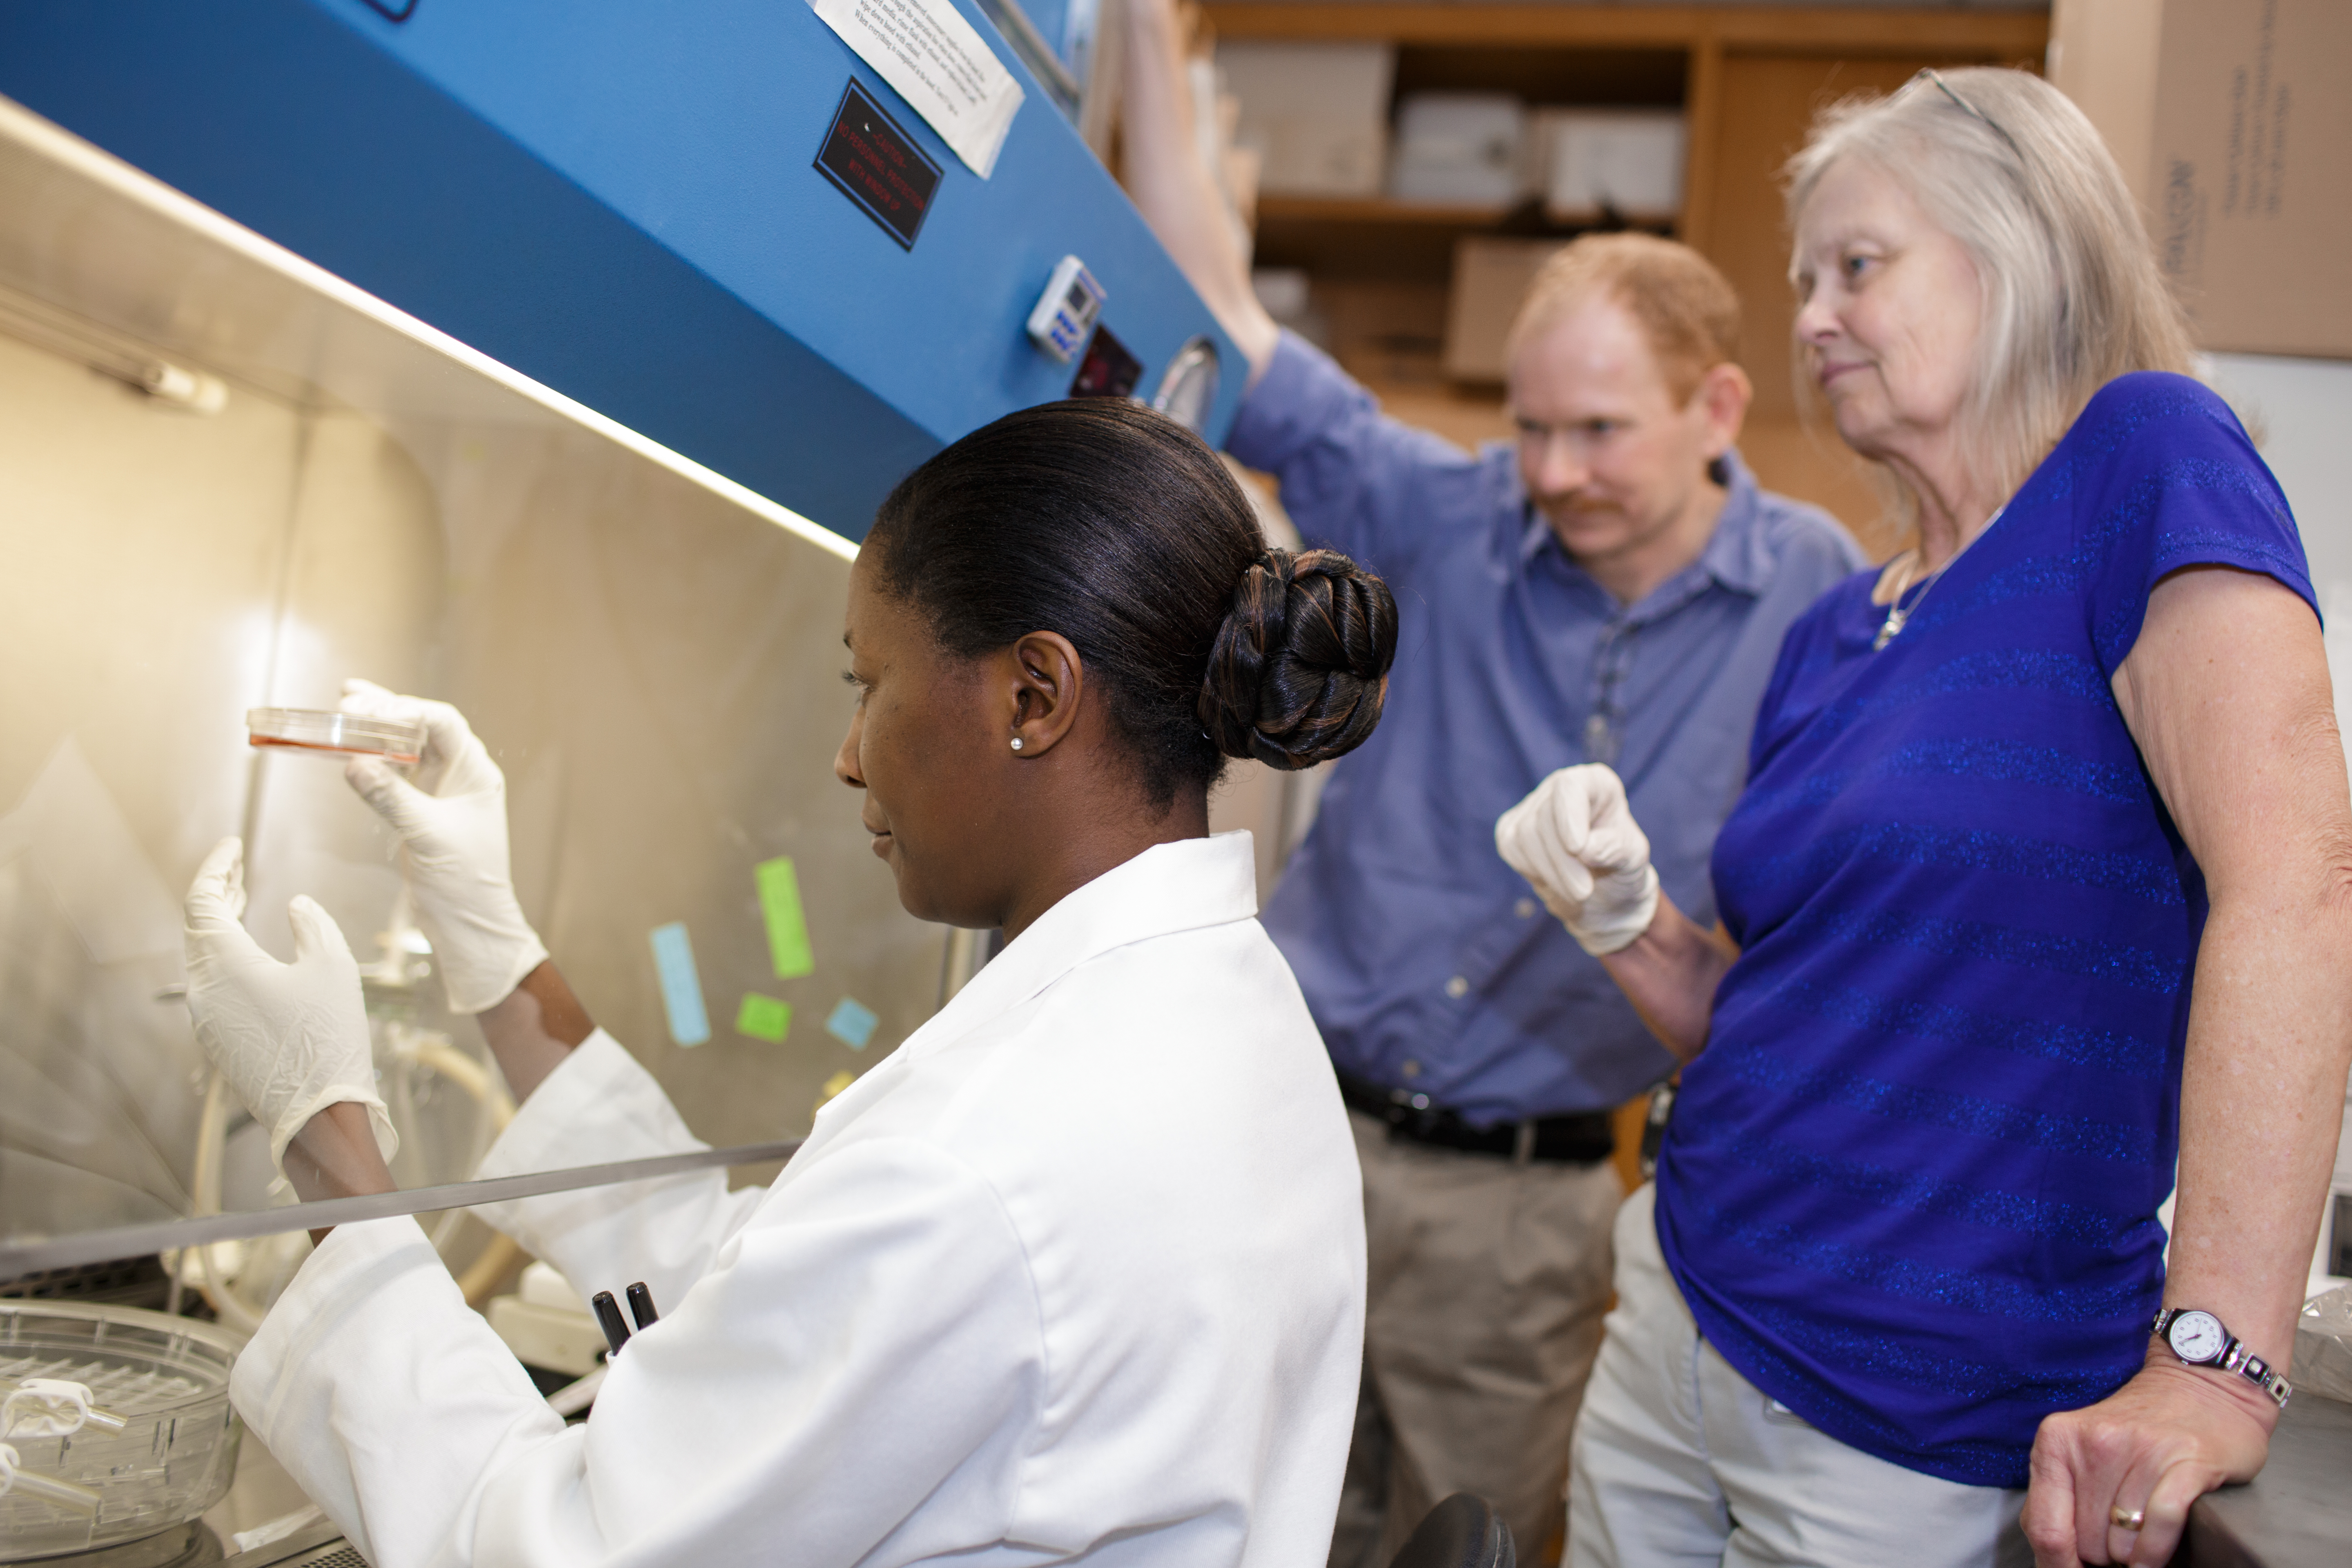 Graduate student Mam Mboge inspects a sample of cancer cells as Robert McKenna, Ph.D., and Susan Frost, Ph.D., look on. McKenna and Frost are professors of biochemistry and molecular biology in the UF College of Medicine. The trio are part of a group of researchers who found that saccharin can inhibit the growth of cancer cells.